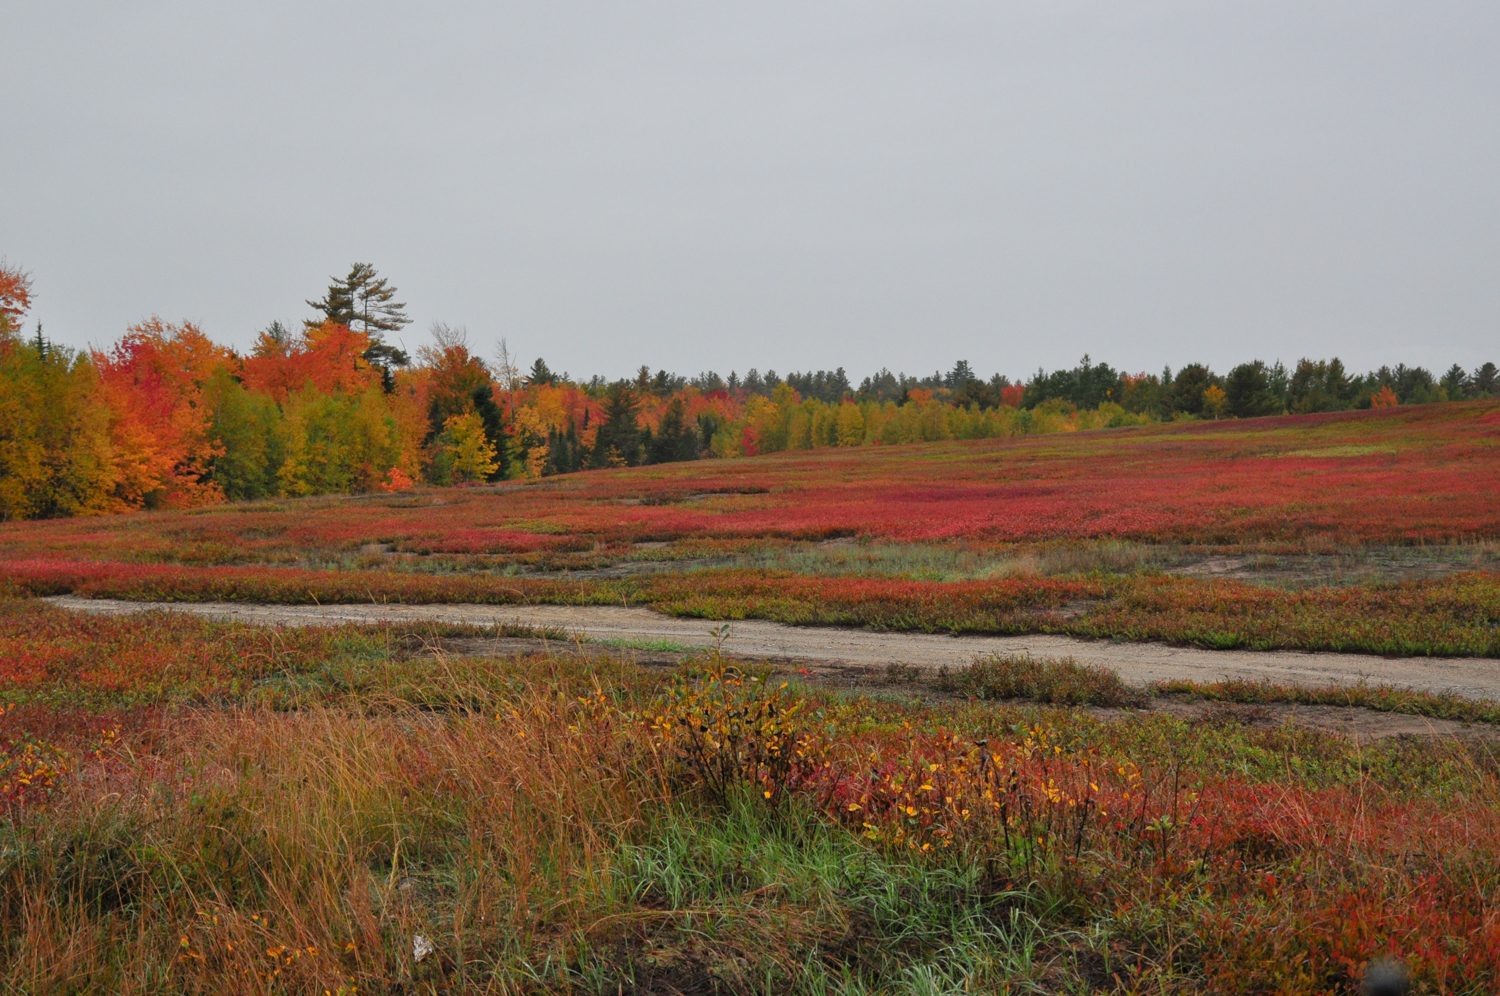 The wild blueberry barrens of Maine turn fiery red in fall, this alone was worth the trip long before we reached Lubec Maine.